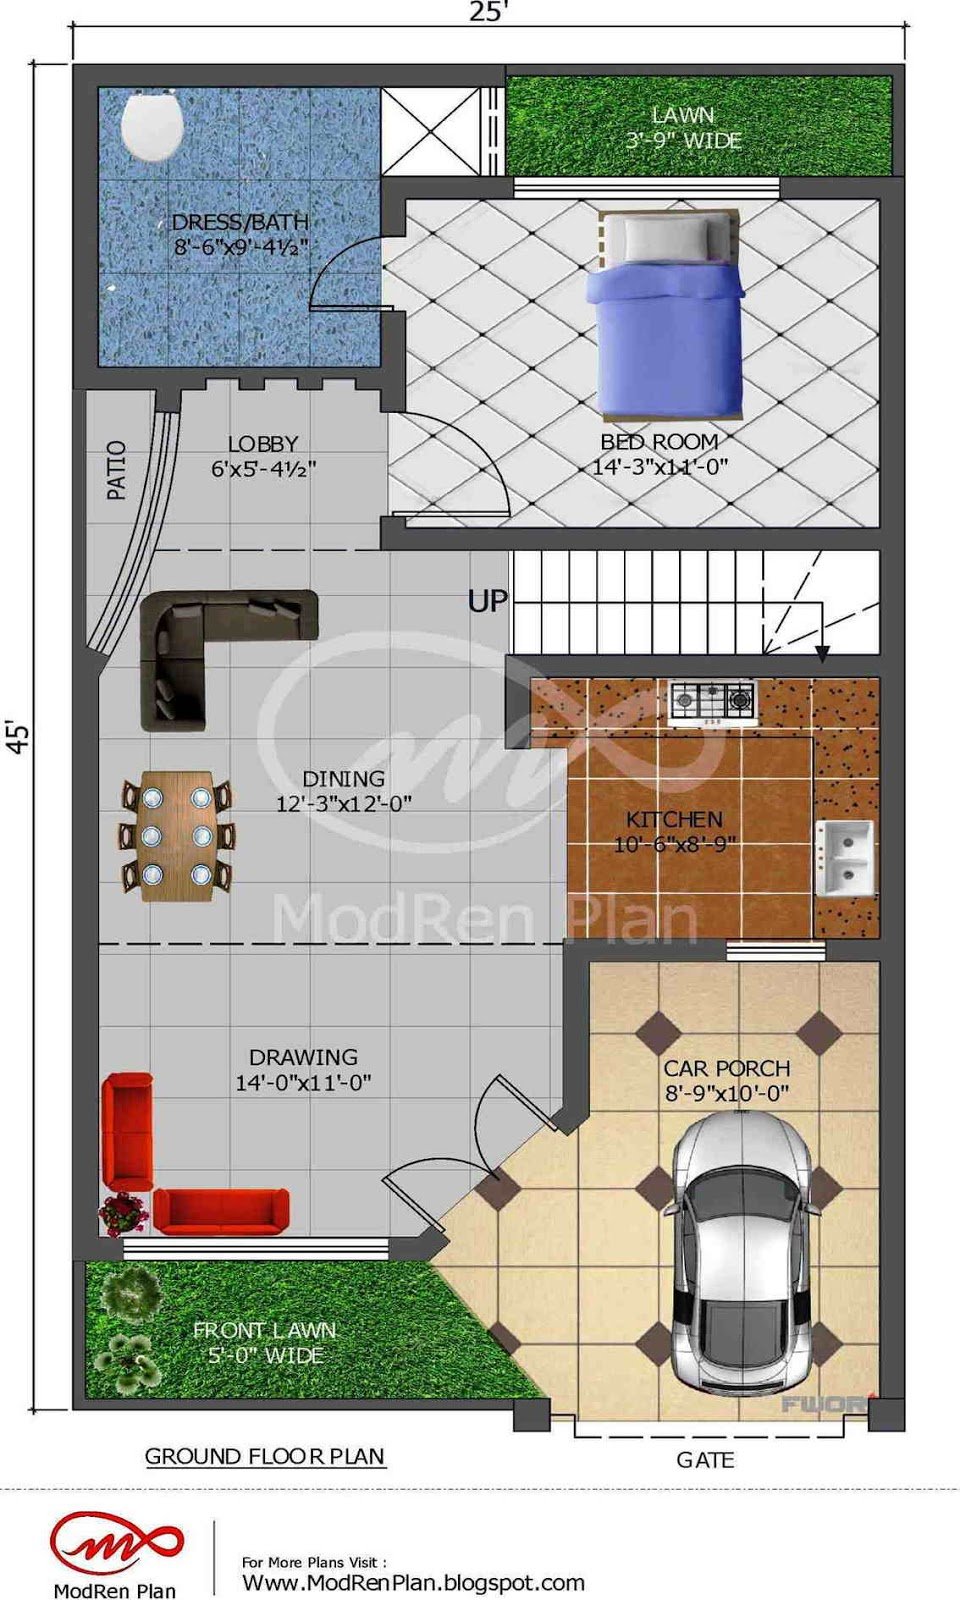 5 marla house plan 1200 sq ft 25x45 feet for Home design 6